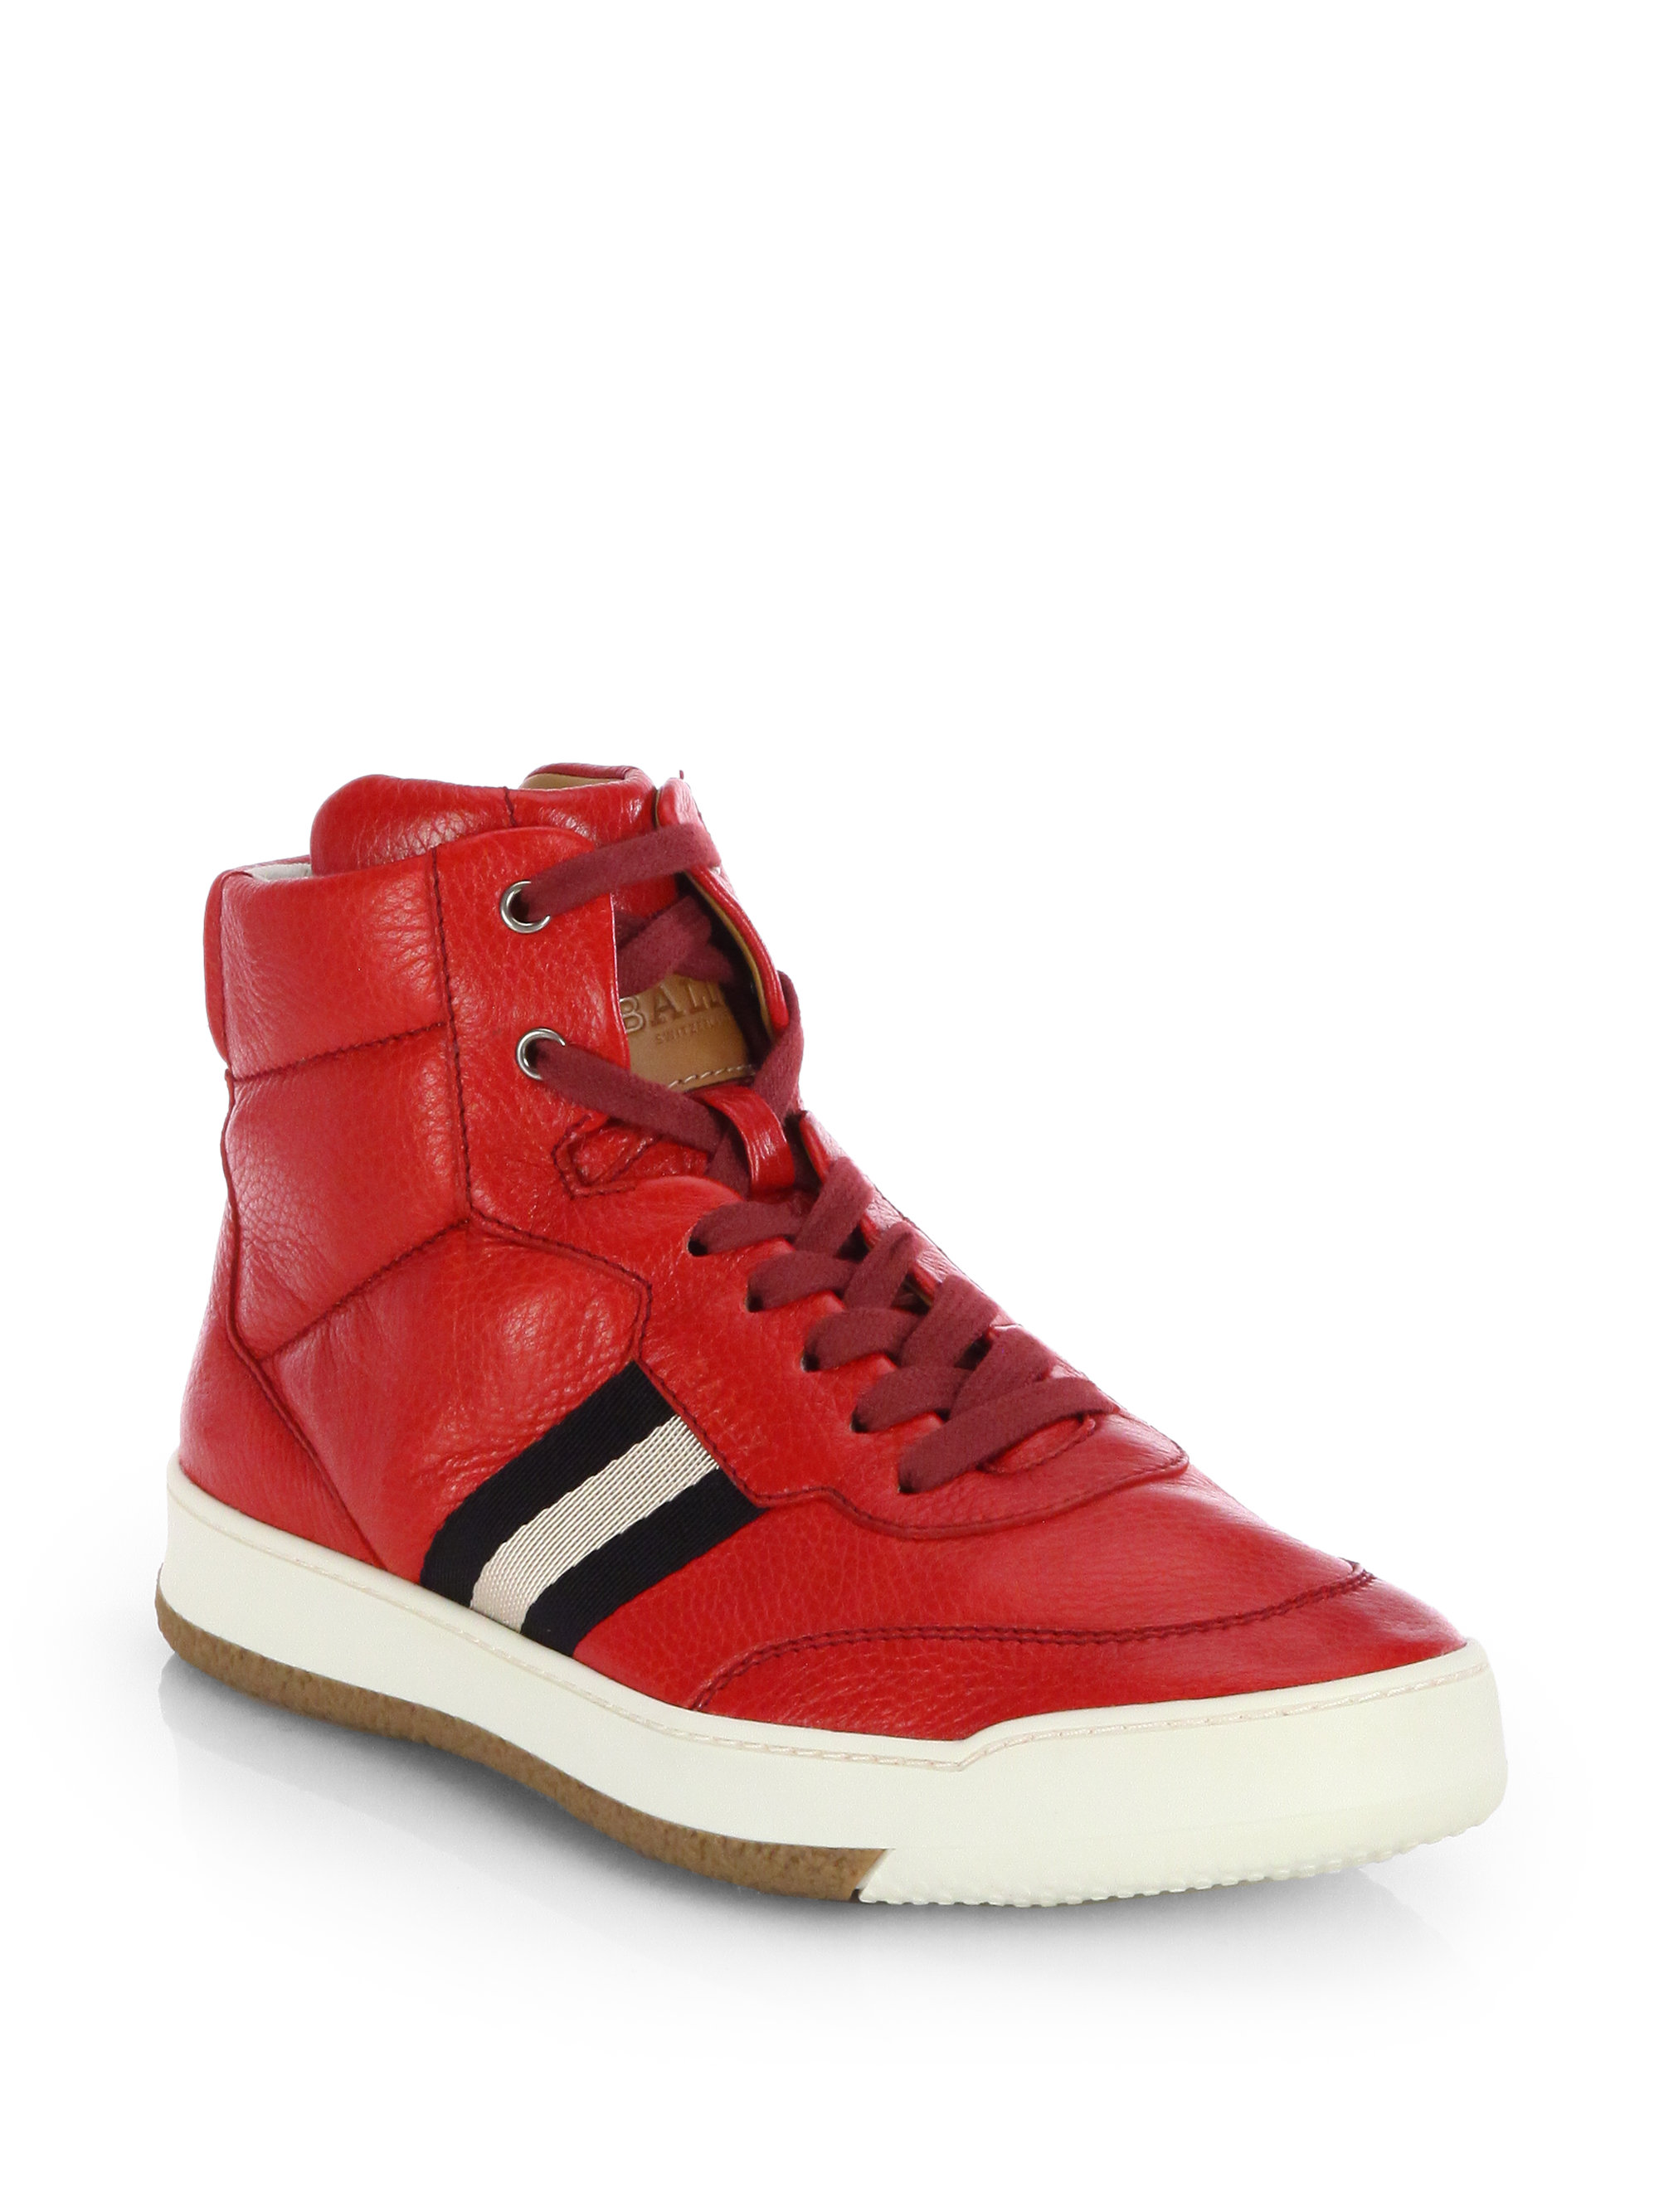 Red Bally Shoes